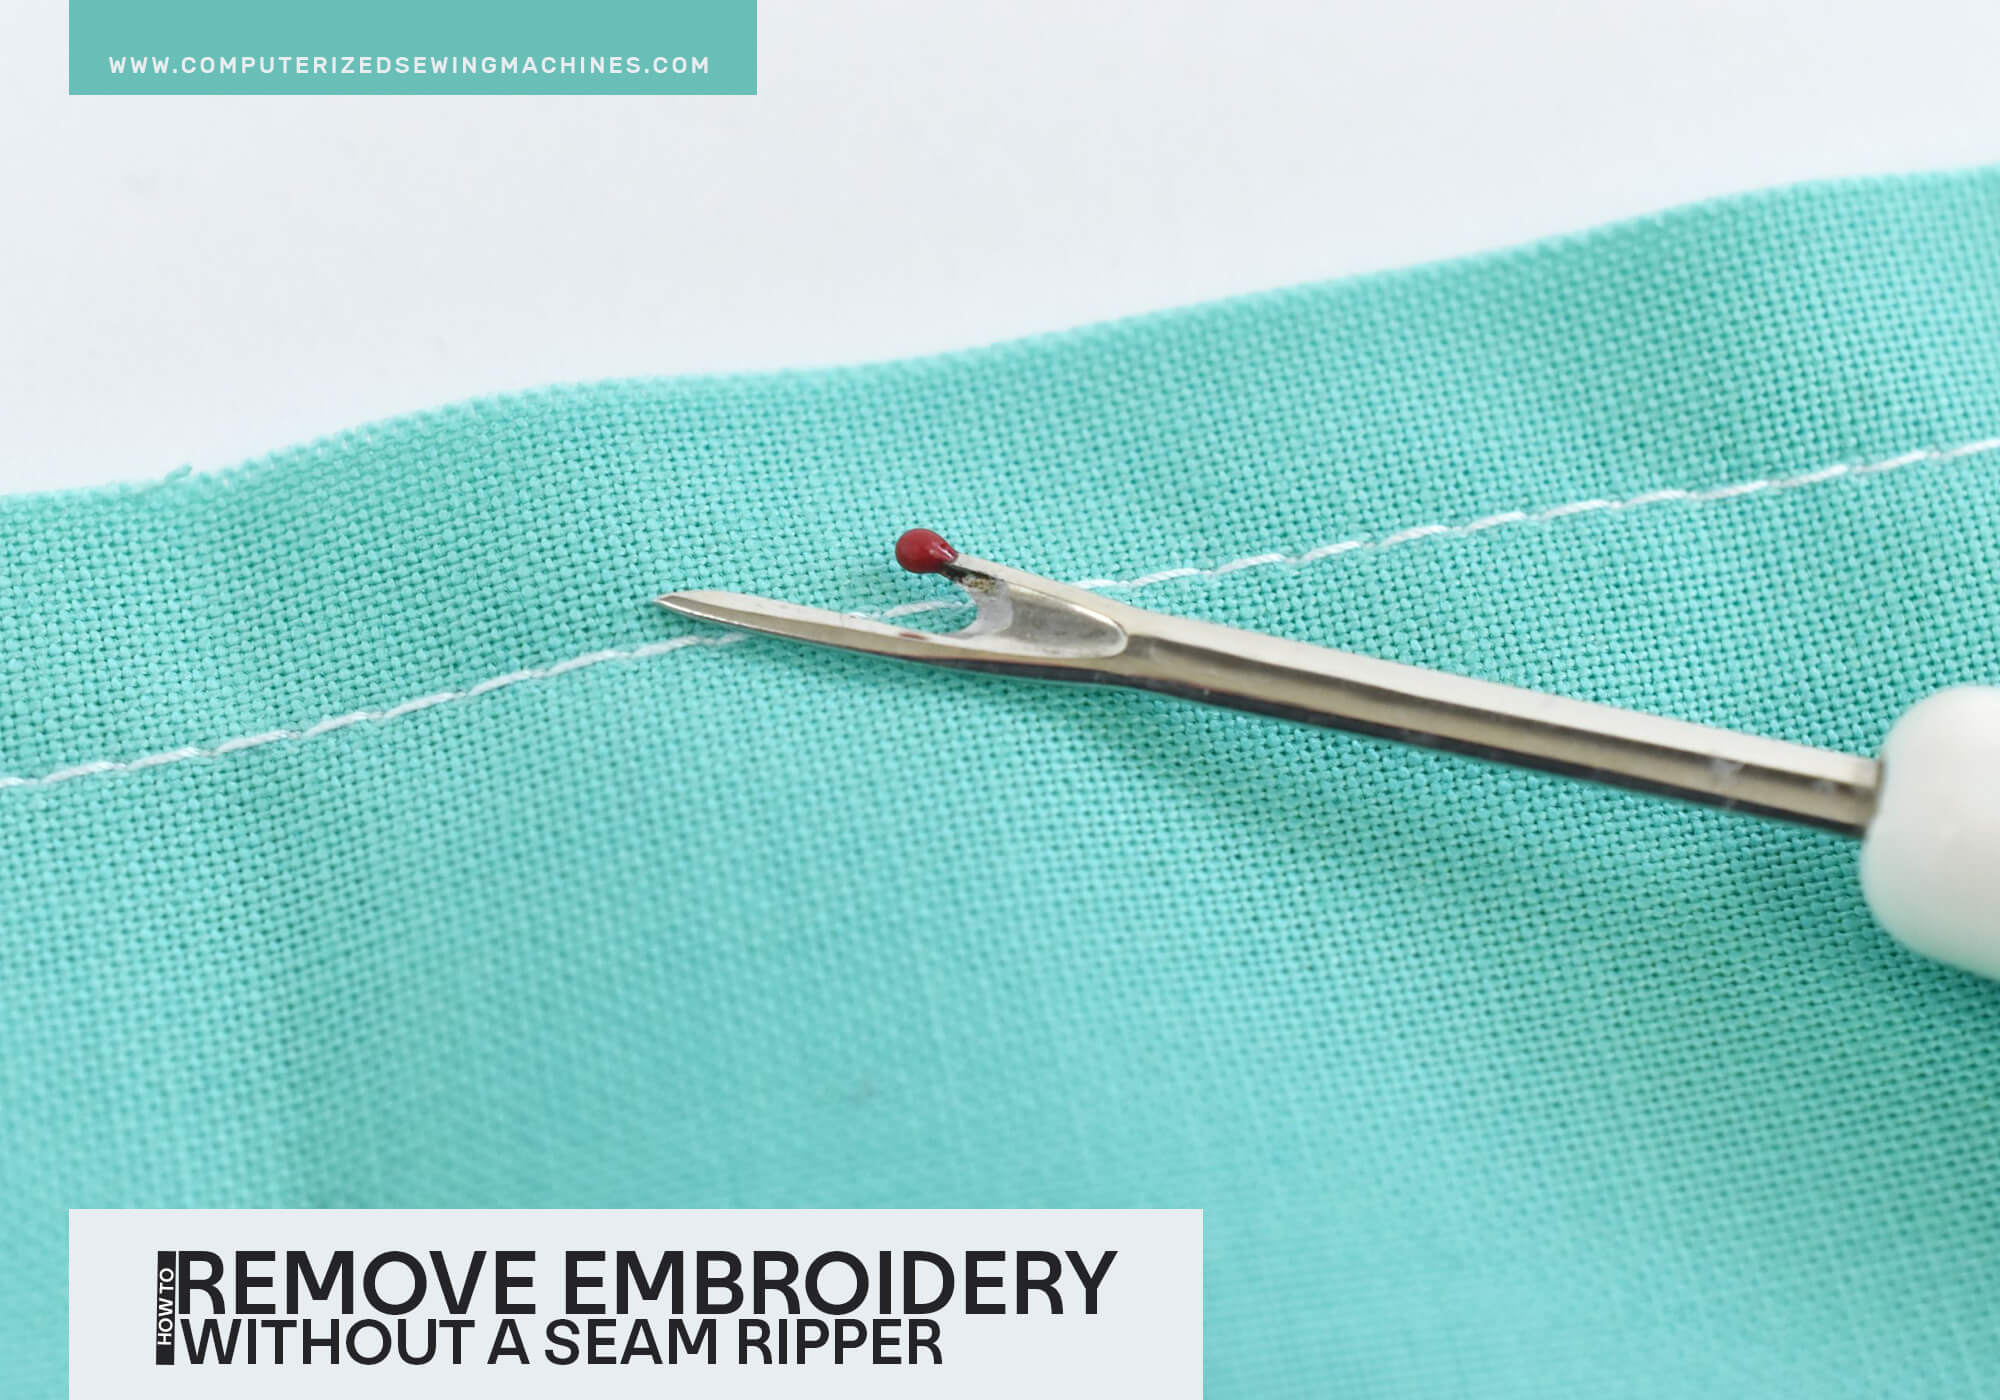 How To Remove Embroidery Without A Seam Ripper